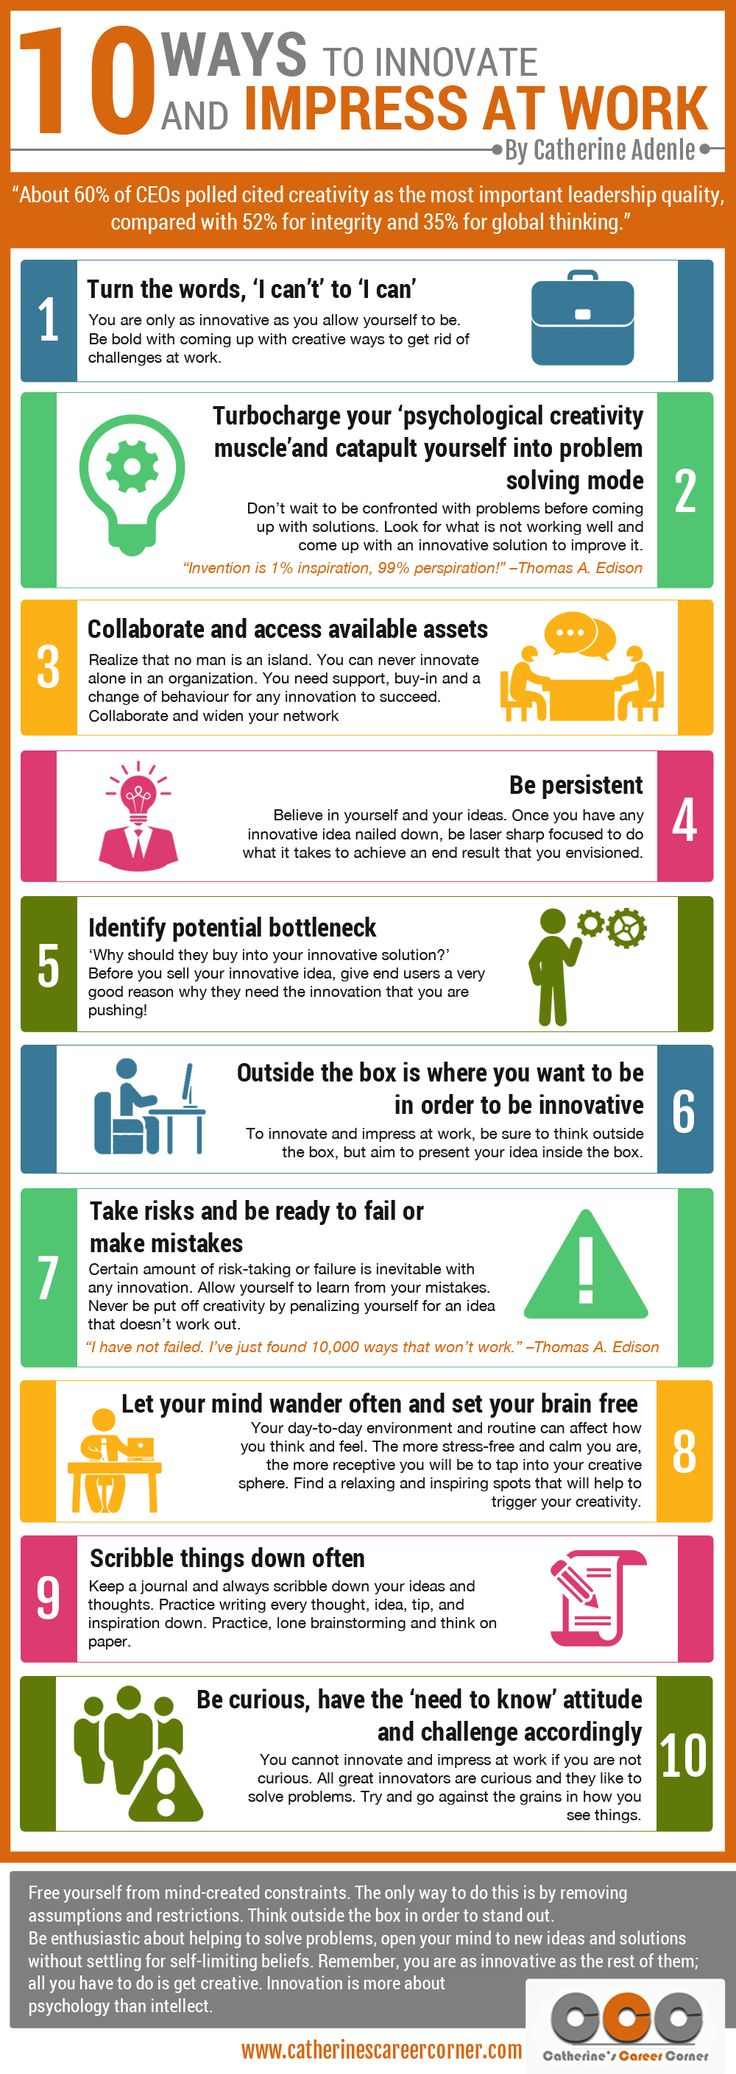 10 Ways to Innovate and Impress at Work (Infographic) via @catherineadenle